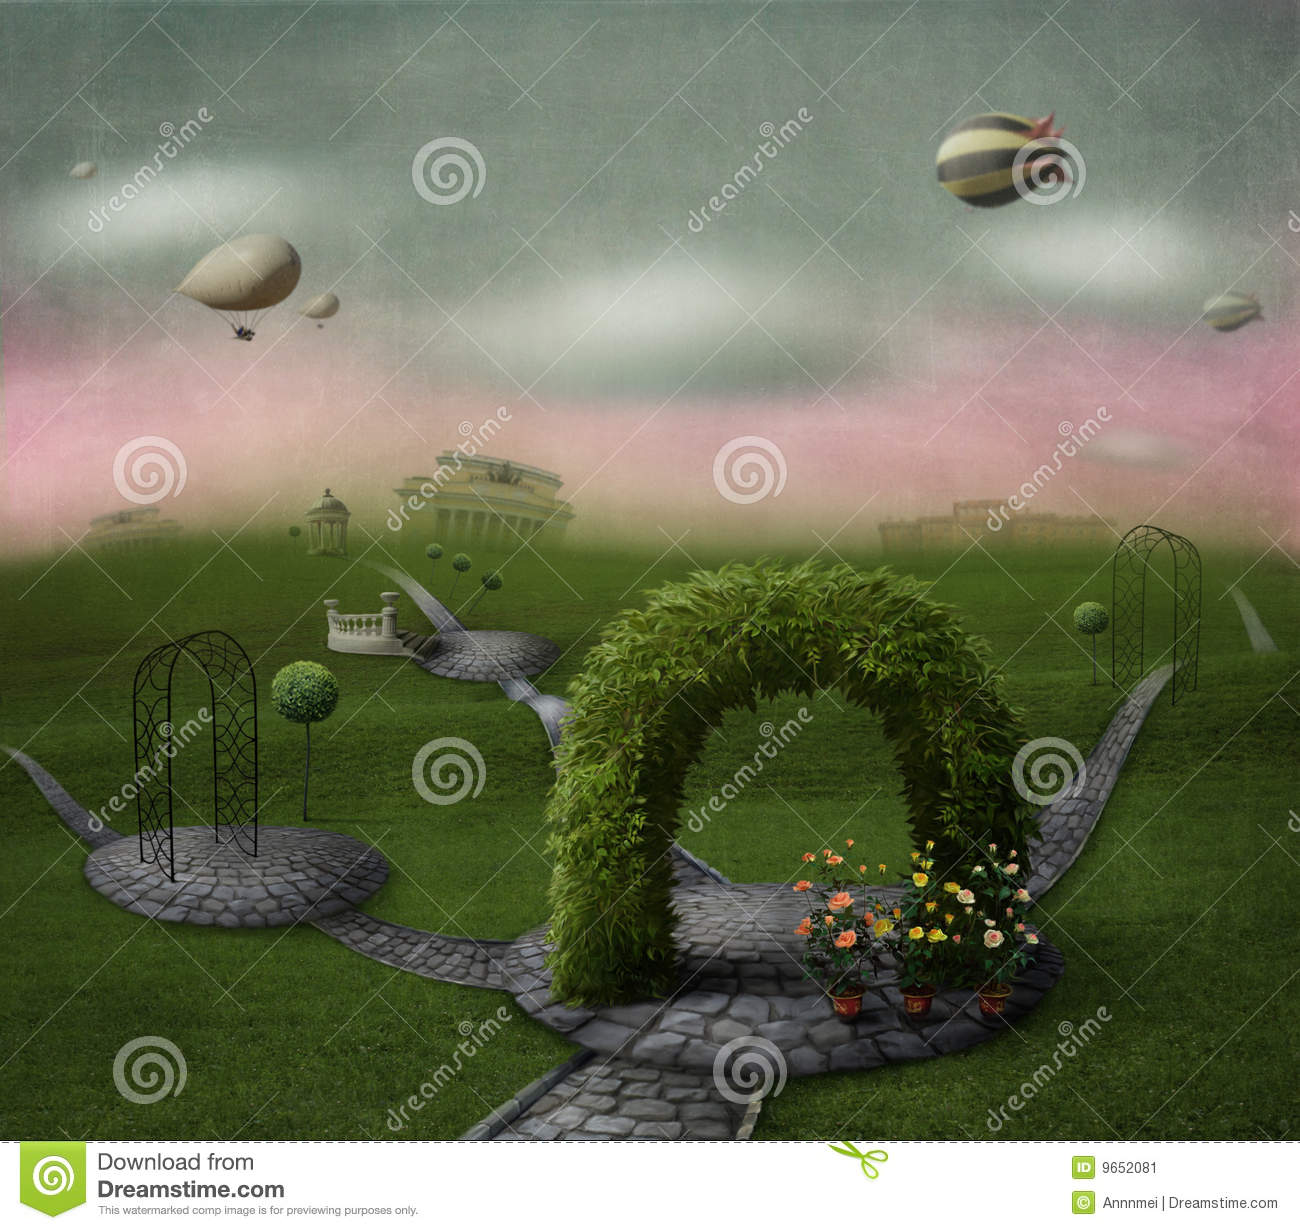 Poster Green World Stock Image - Image: 9652081